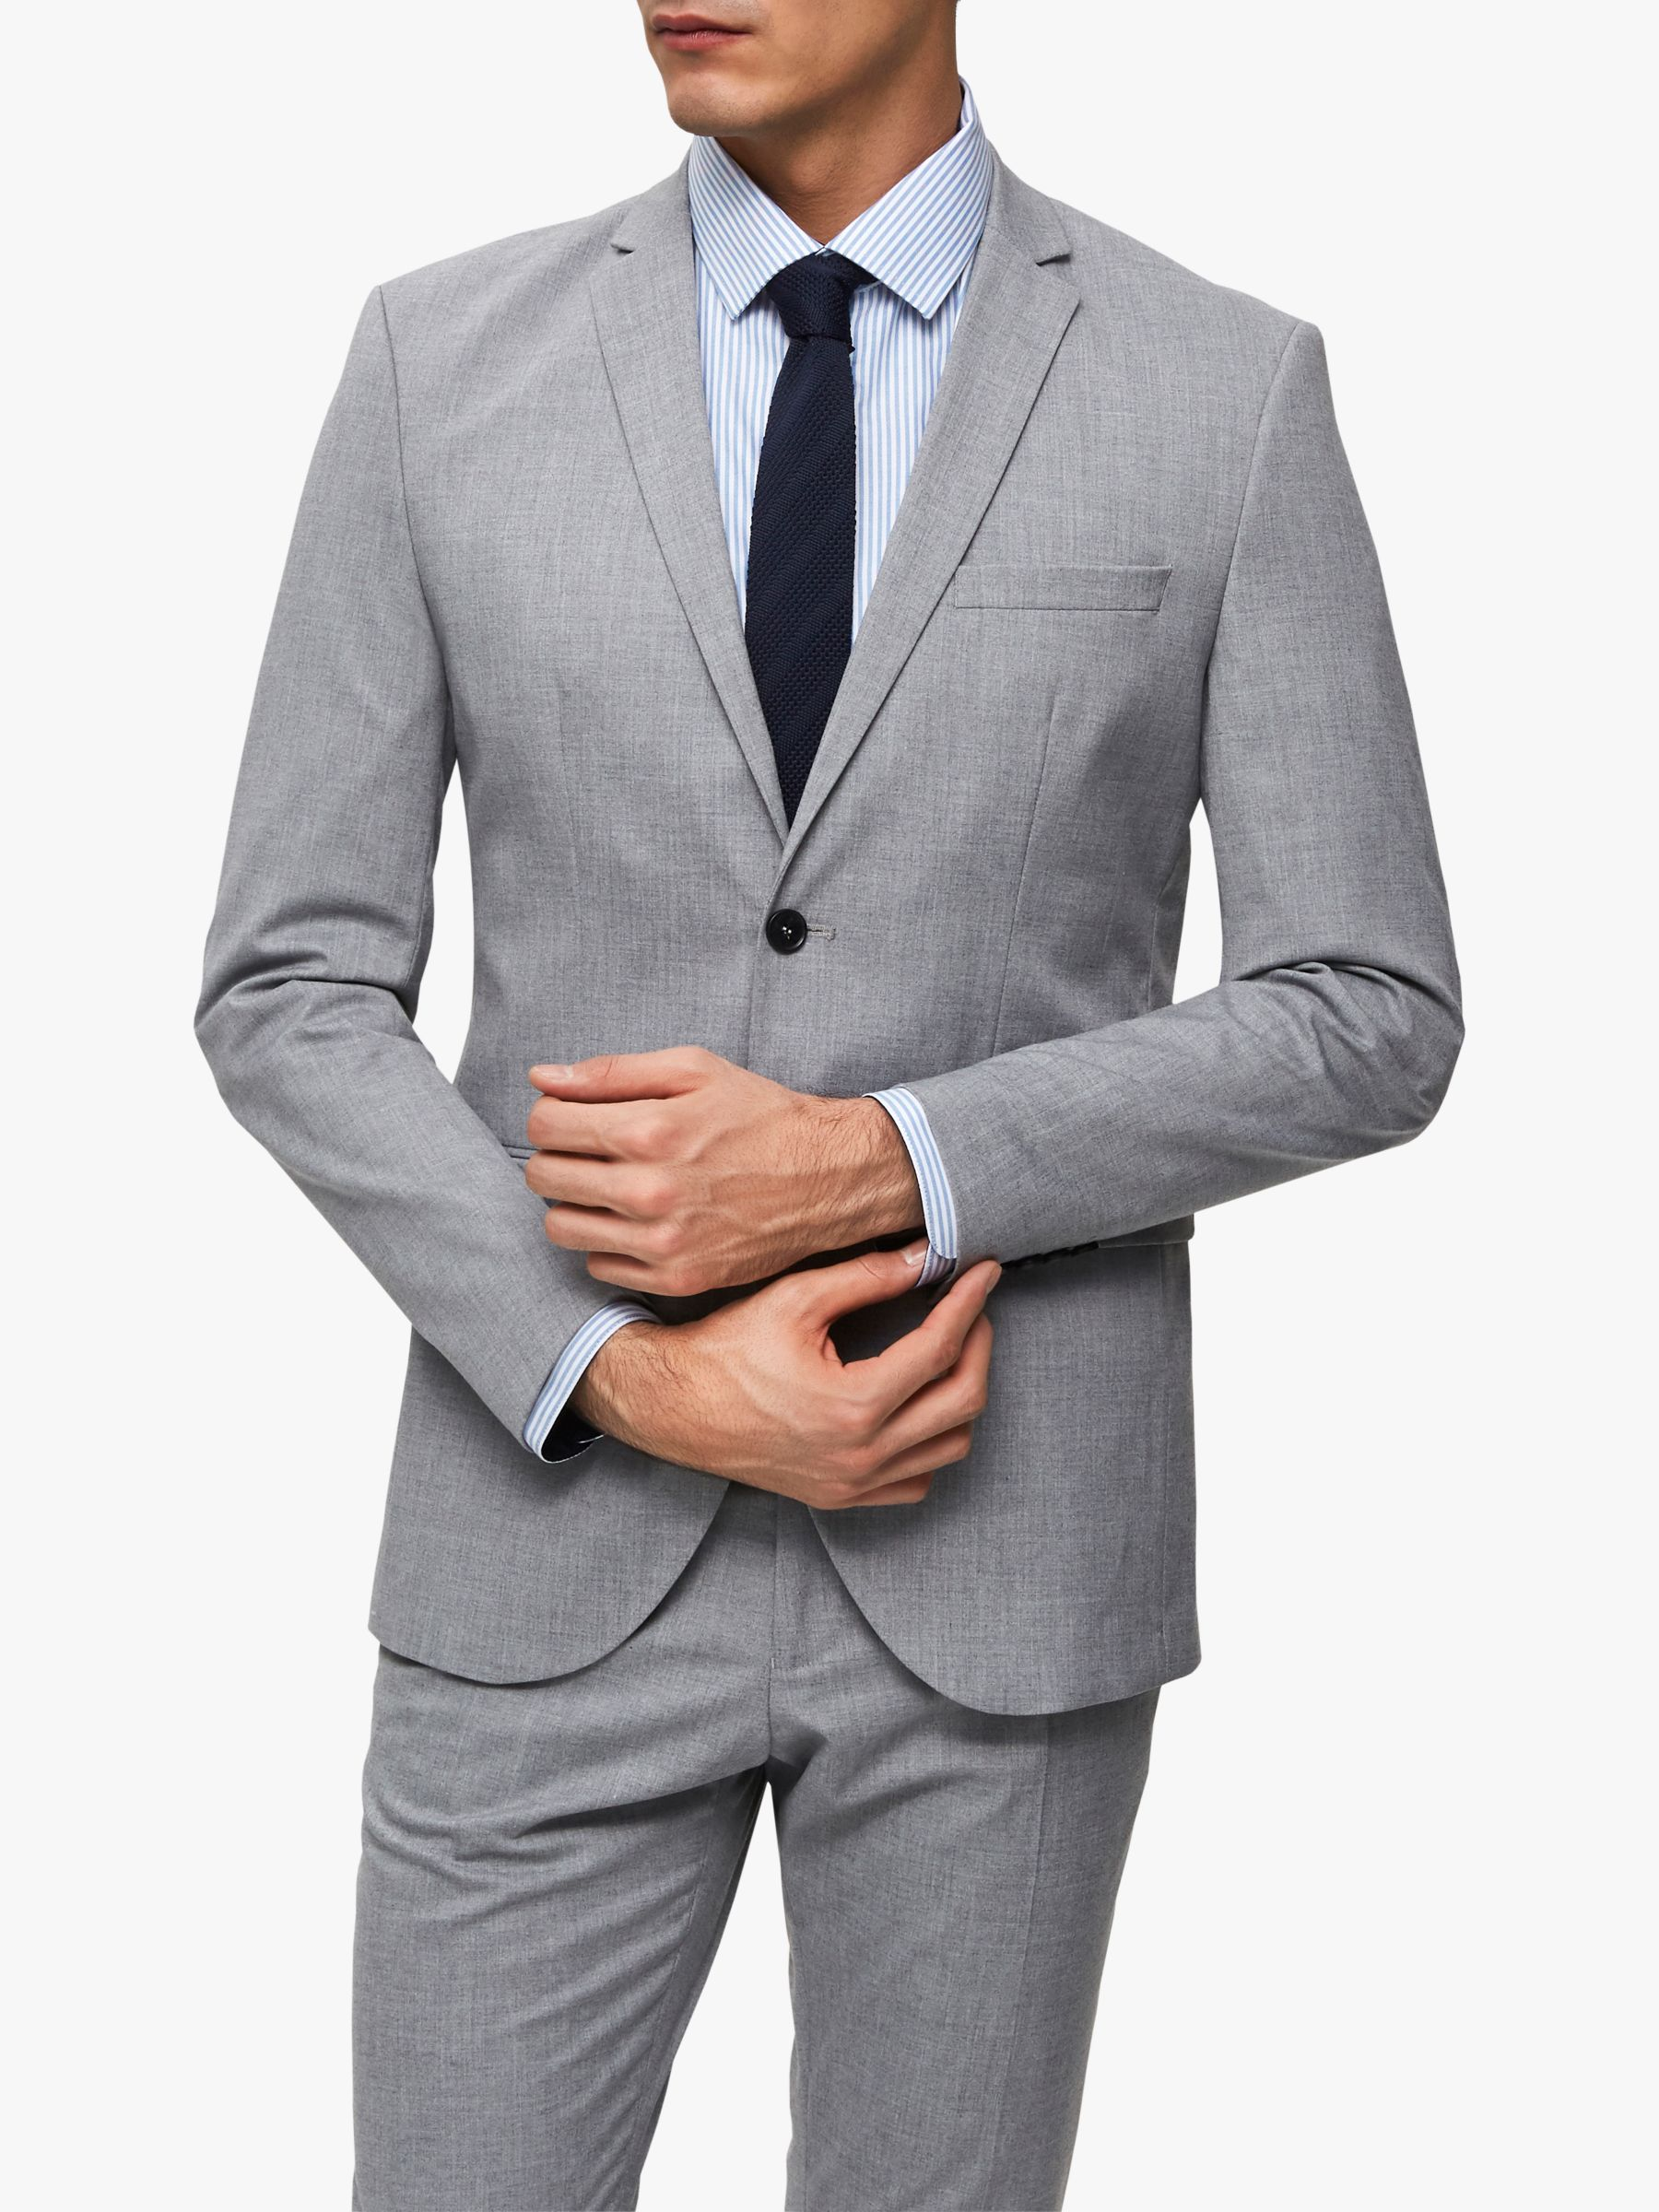 Selected Homme SELECTED HOMME Slim Fit Suit Jacket, Light Grey